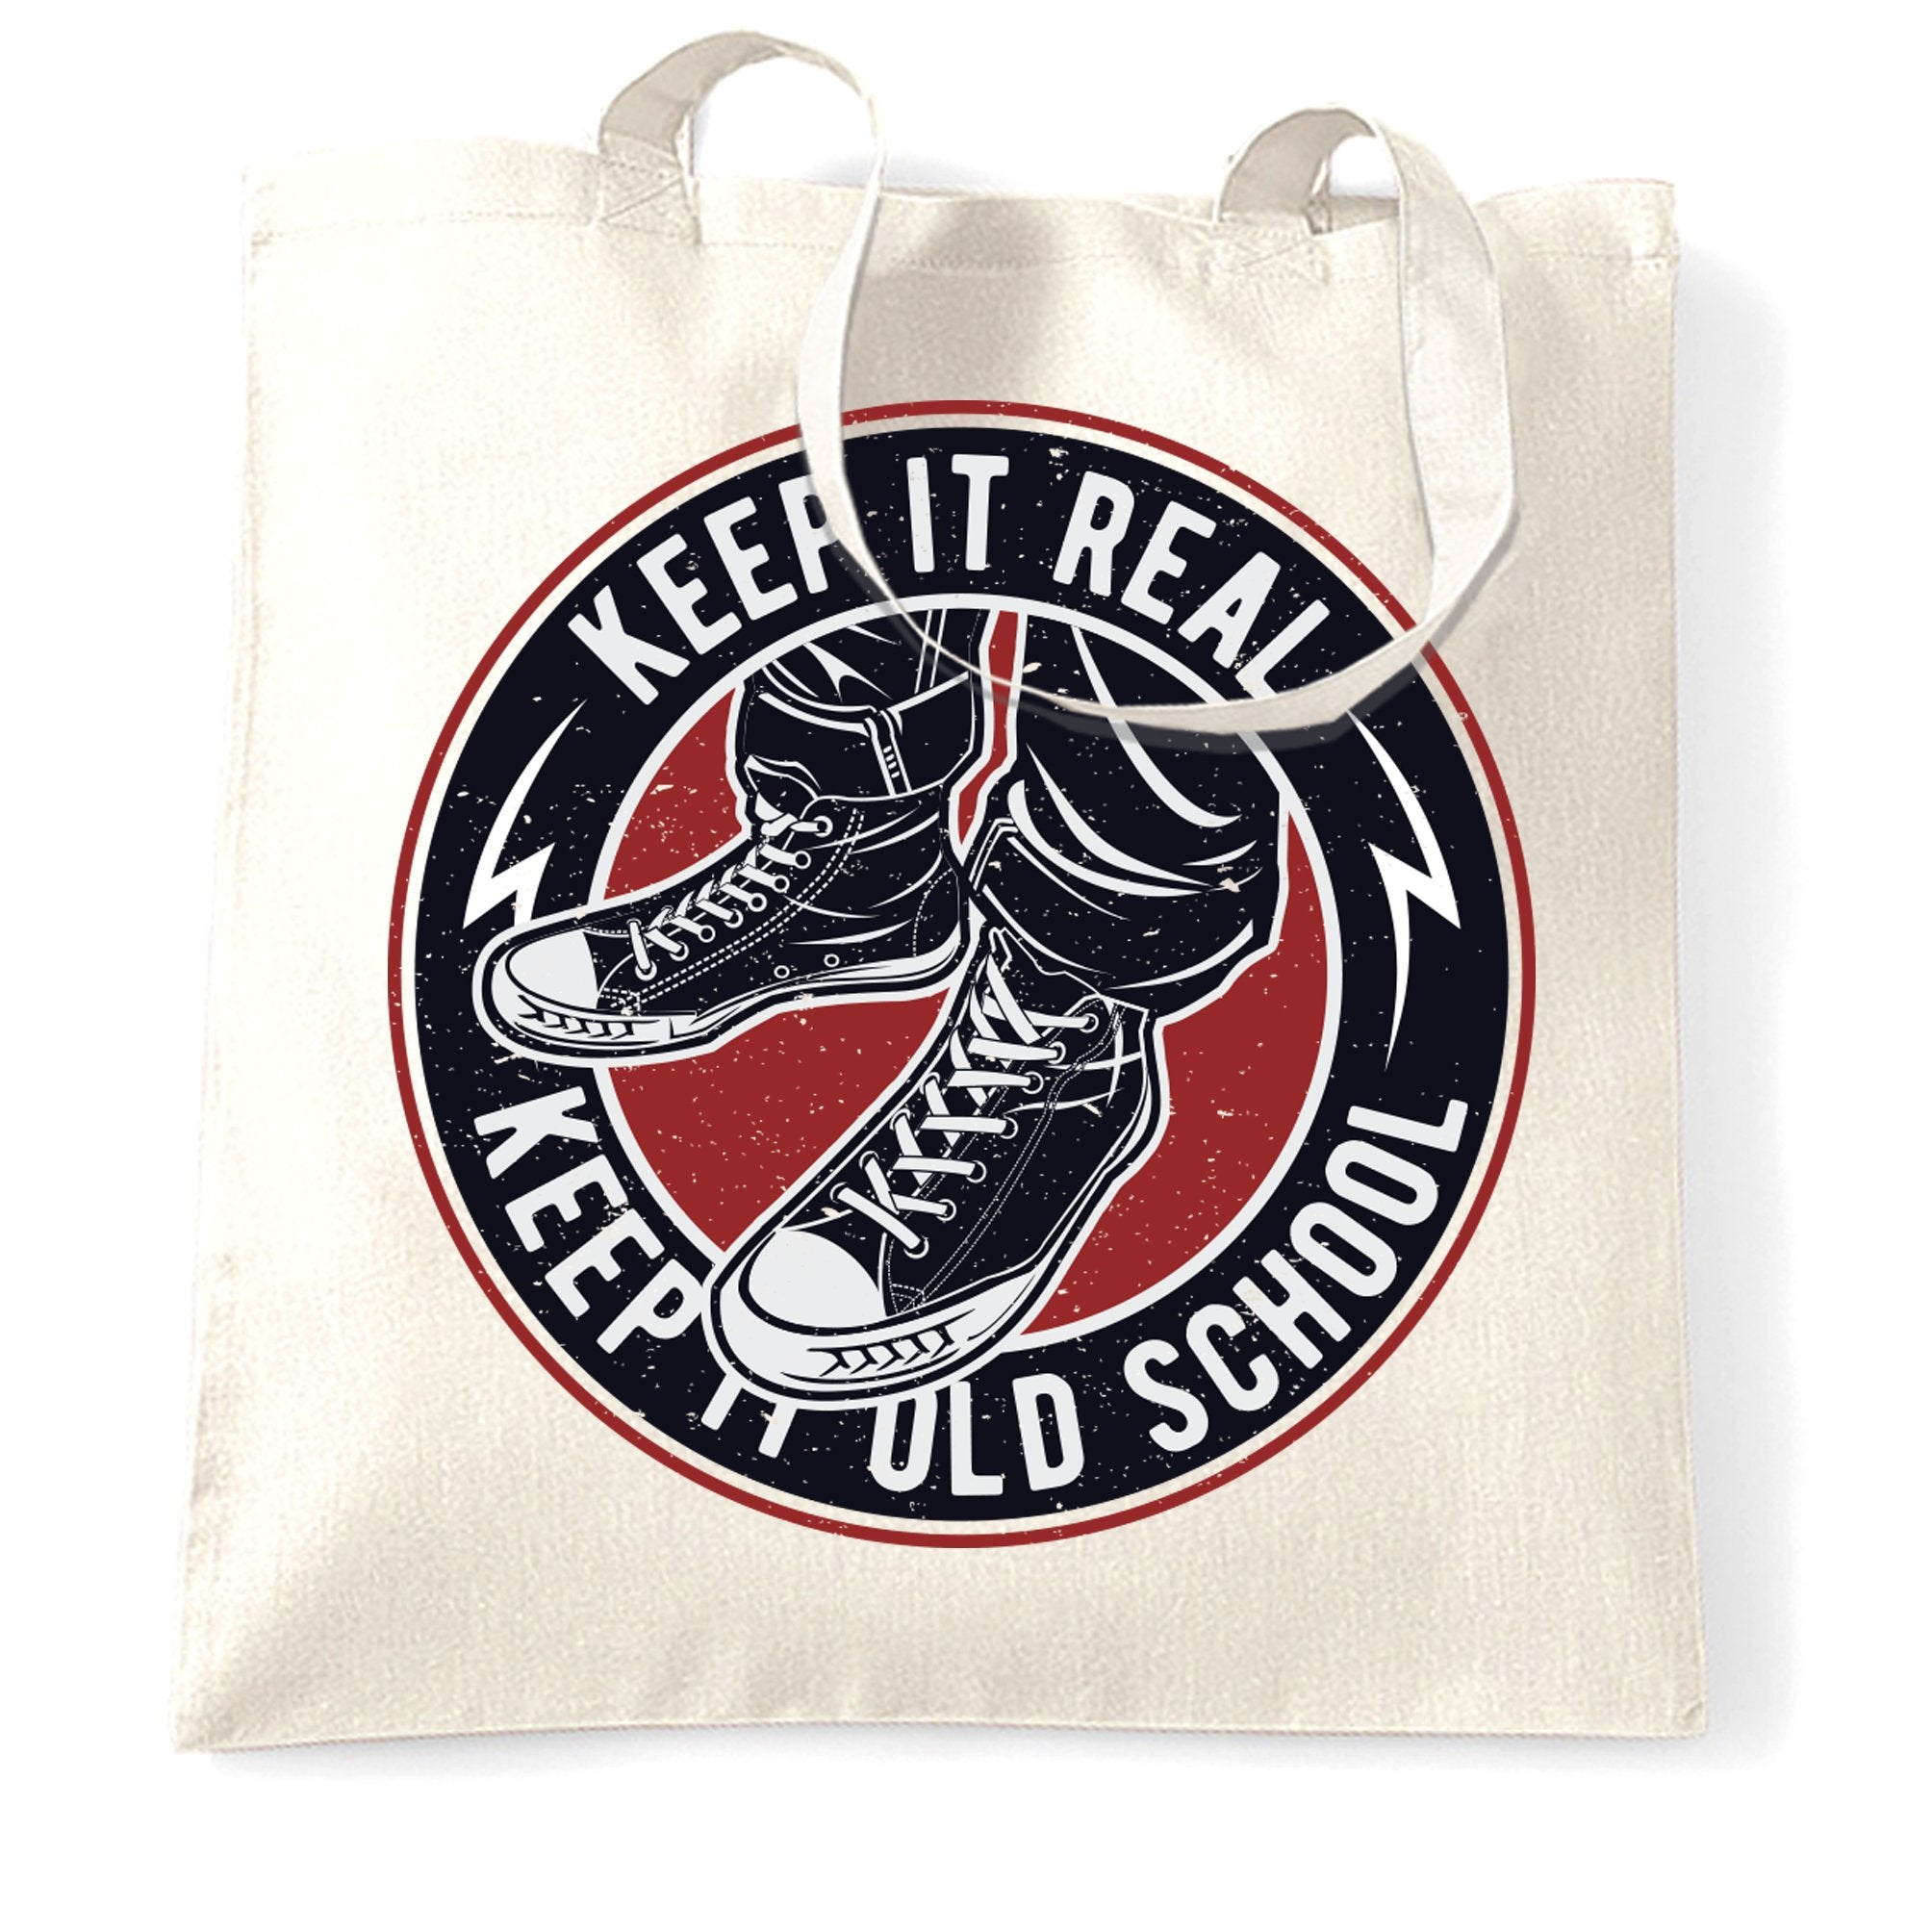 Retro Tote Bag Keep It Real, Keep It Old School Logo